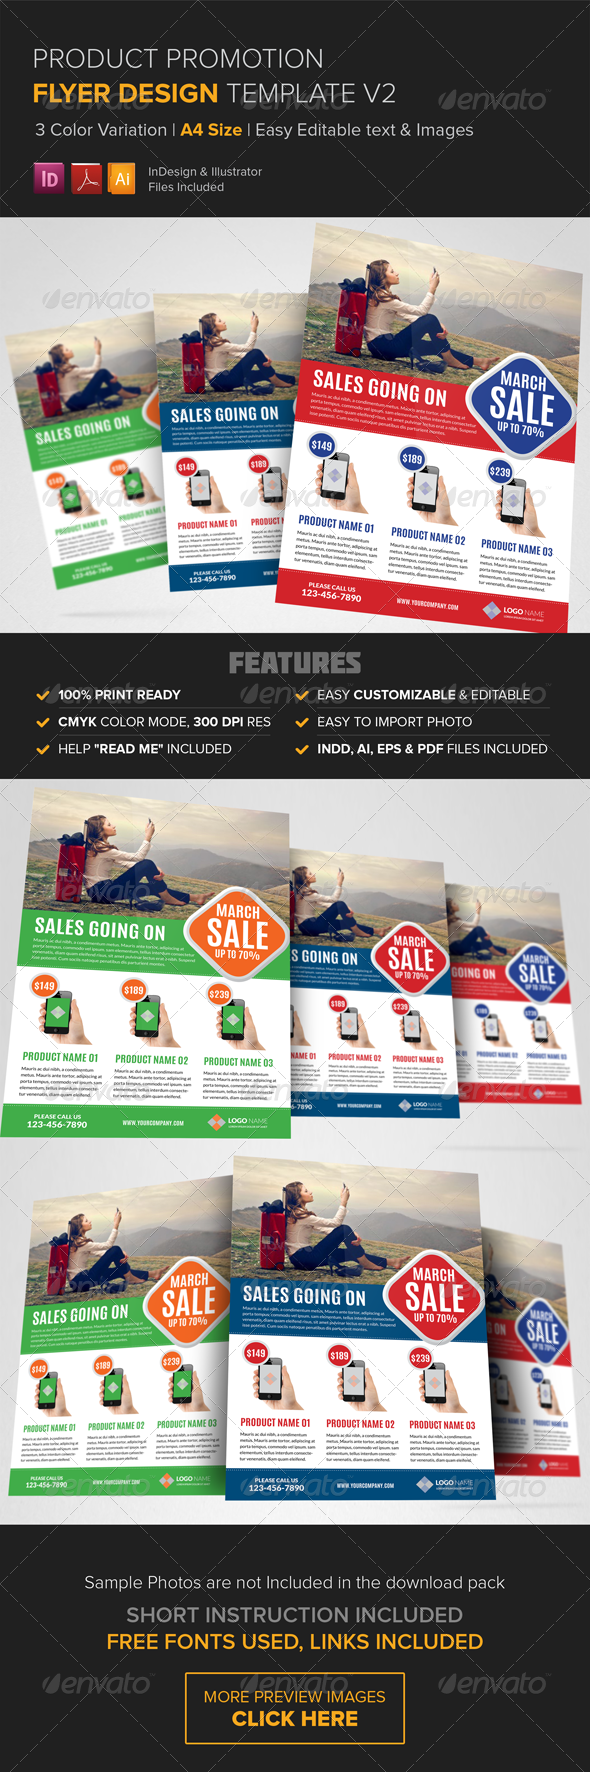 GraphicRiver Product Promotion Flyer Design Template v2 8430716